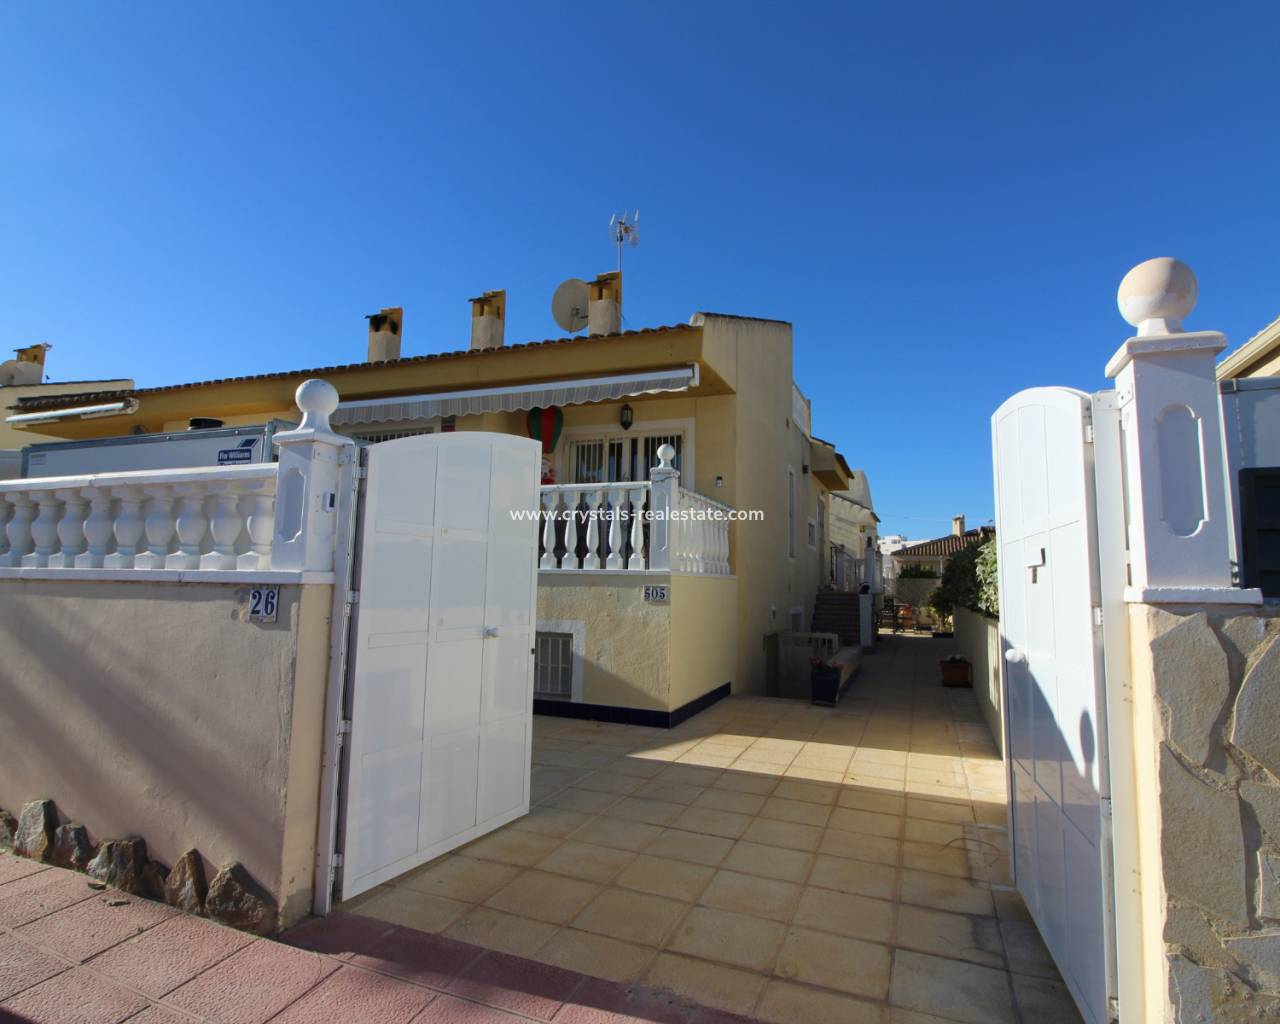 Villa / Semi detached - Resale - Benijofar - Benimar